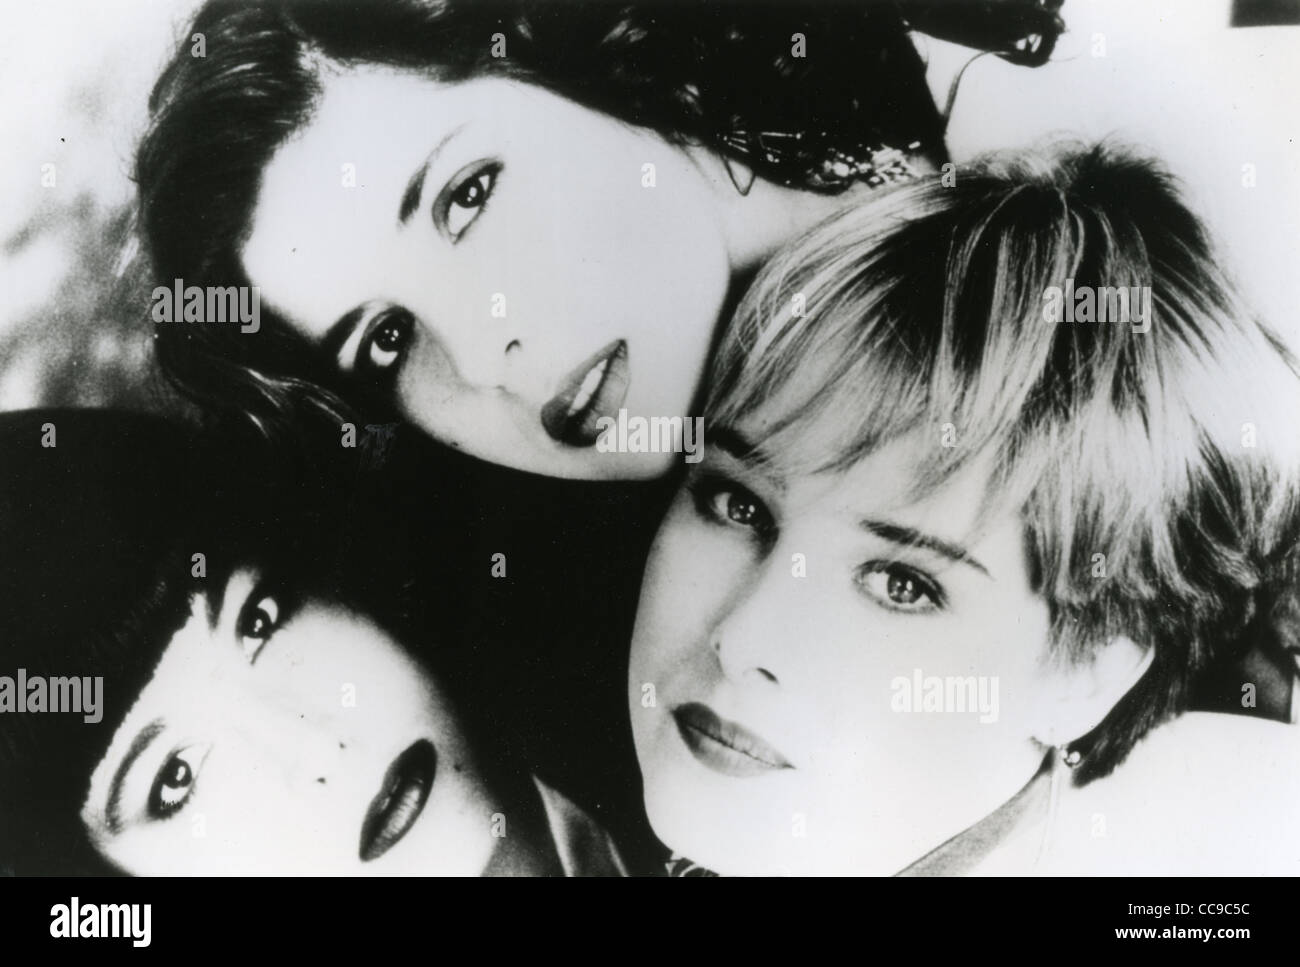 WILSON PHILLIPS Promo photo of US group in 1990. Clockwise from l: Carnie Wilson, Wendy Wilson, Chynna Phillips. - Stock Image